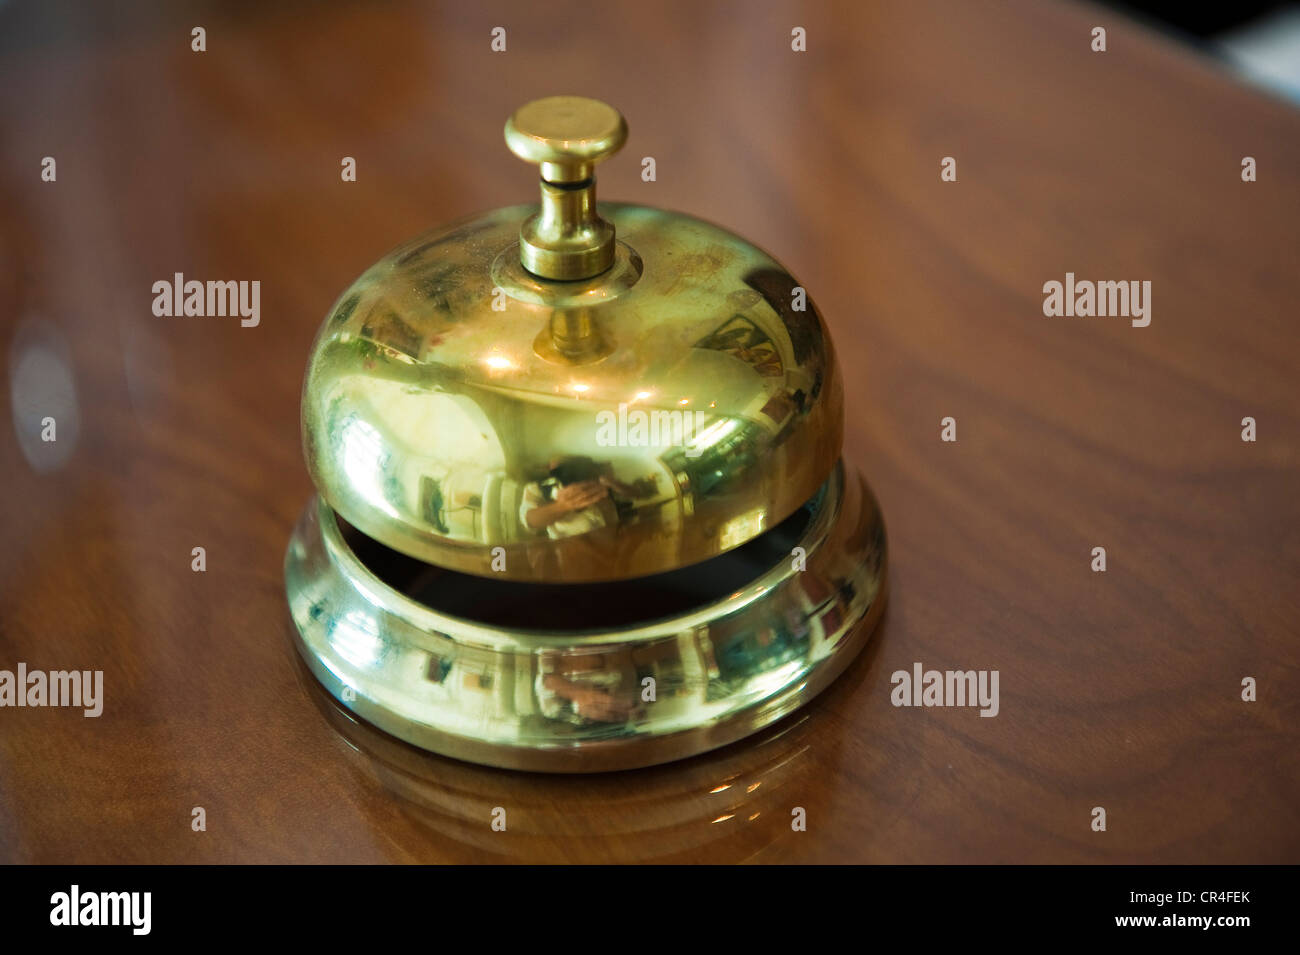 France, Herault, Sete, Grand Hotel, reception bell - Stock Image